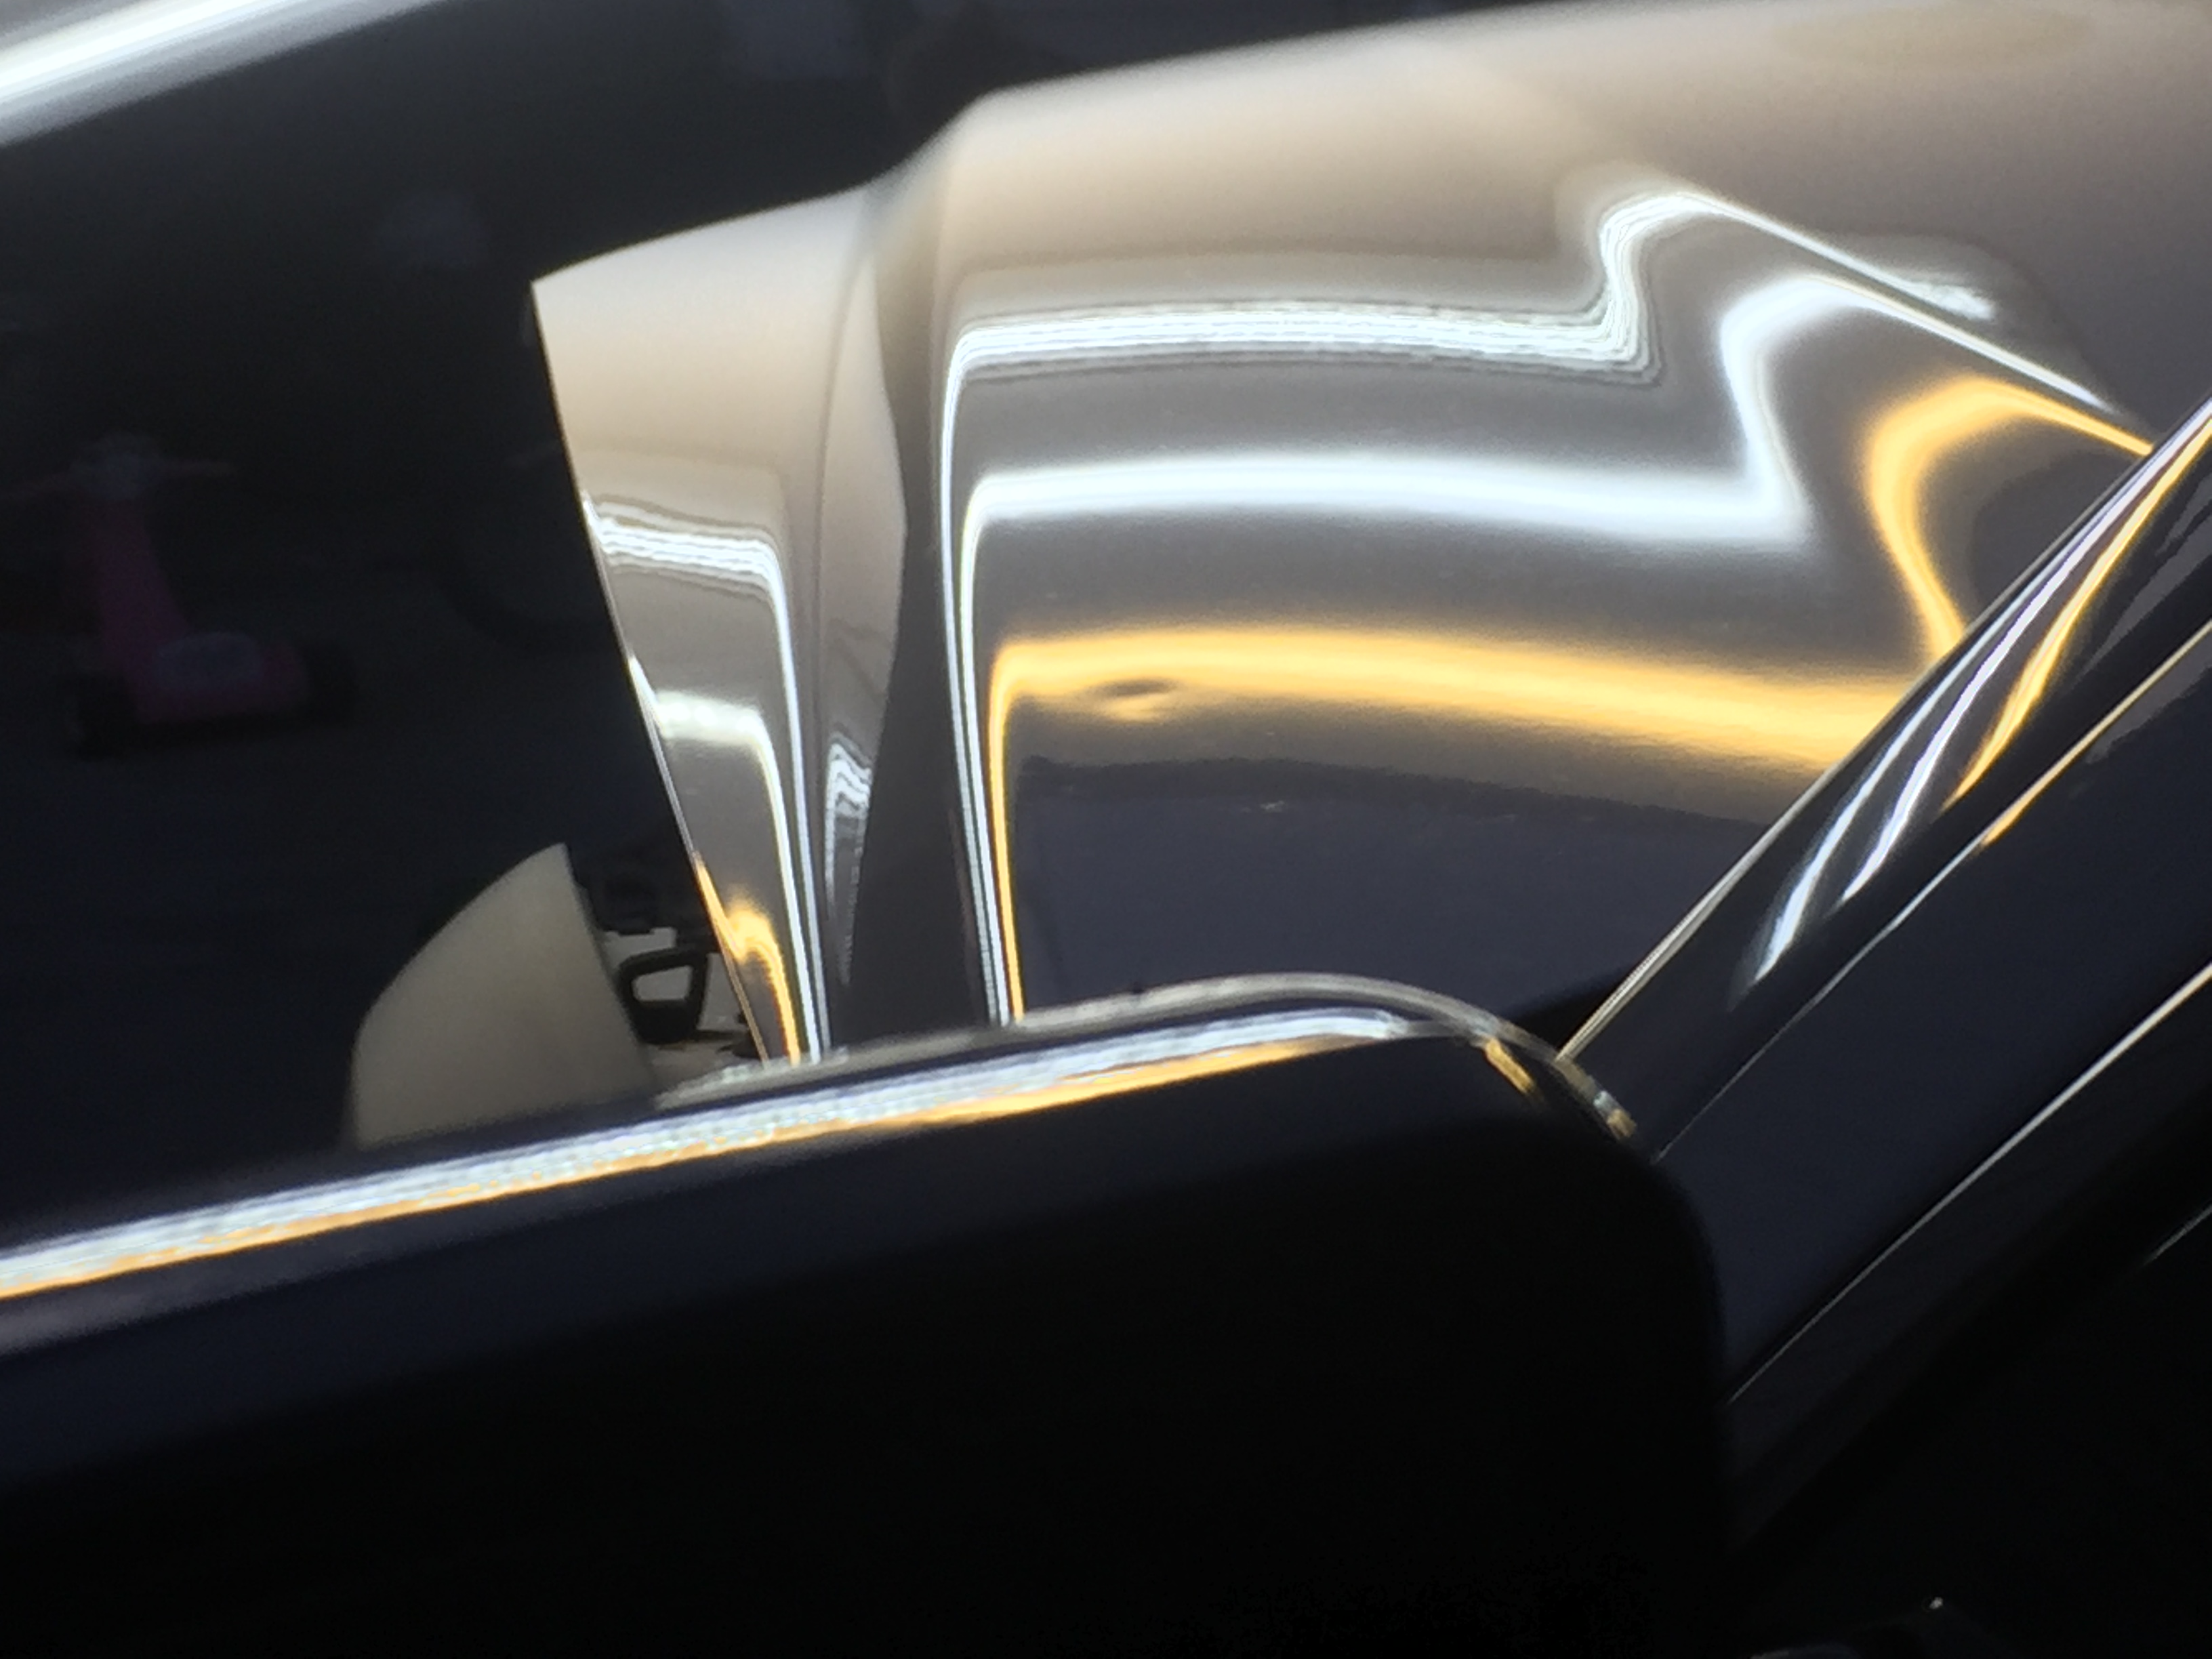 2016 Chevrolet Suburban, Dent Removal on Hood, Paintless Dent Removal Springfield IL, http://217dent.com2016 Chevrolet Suburban, Dent Removal on Hood, Paintless Dent Removal Springfield IL, http://217dent.com